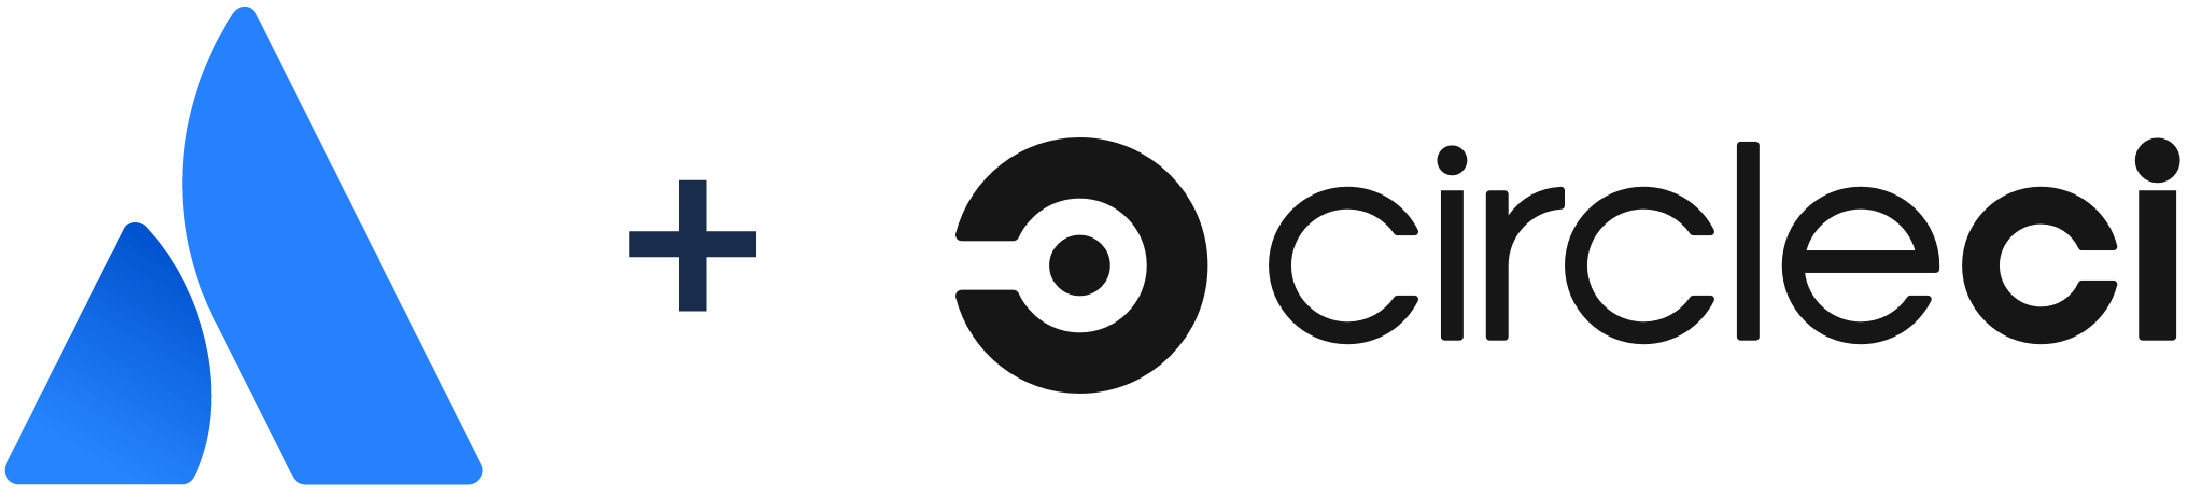 Atlassian logo + CircleCI logo